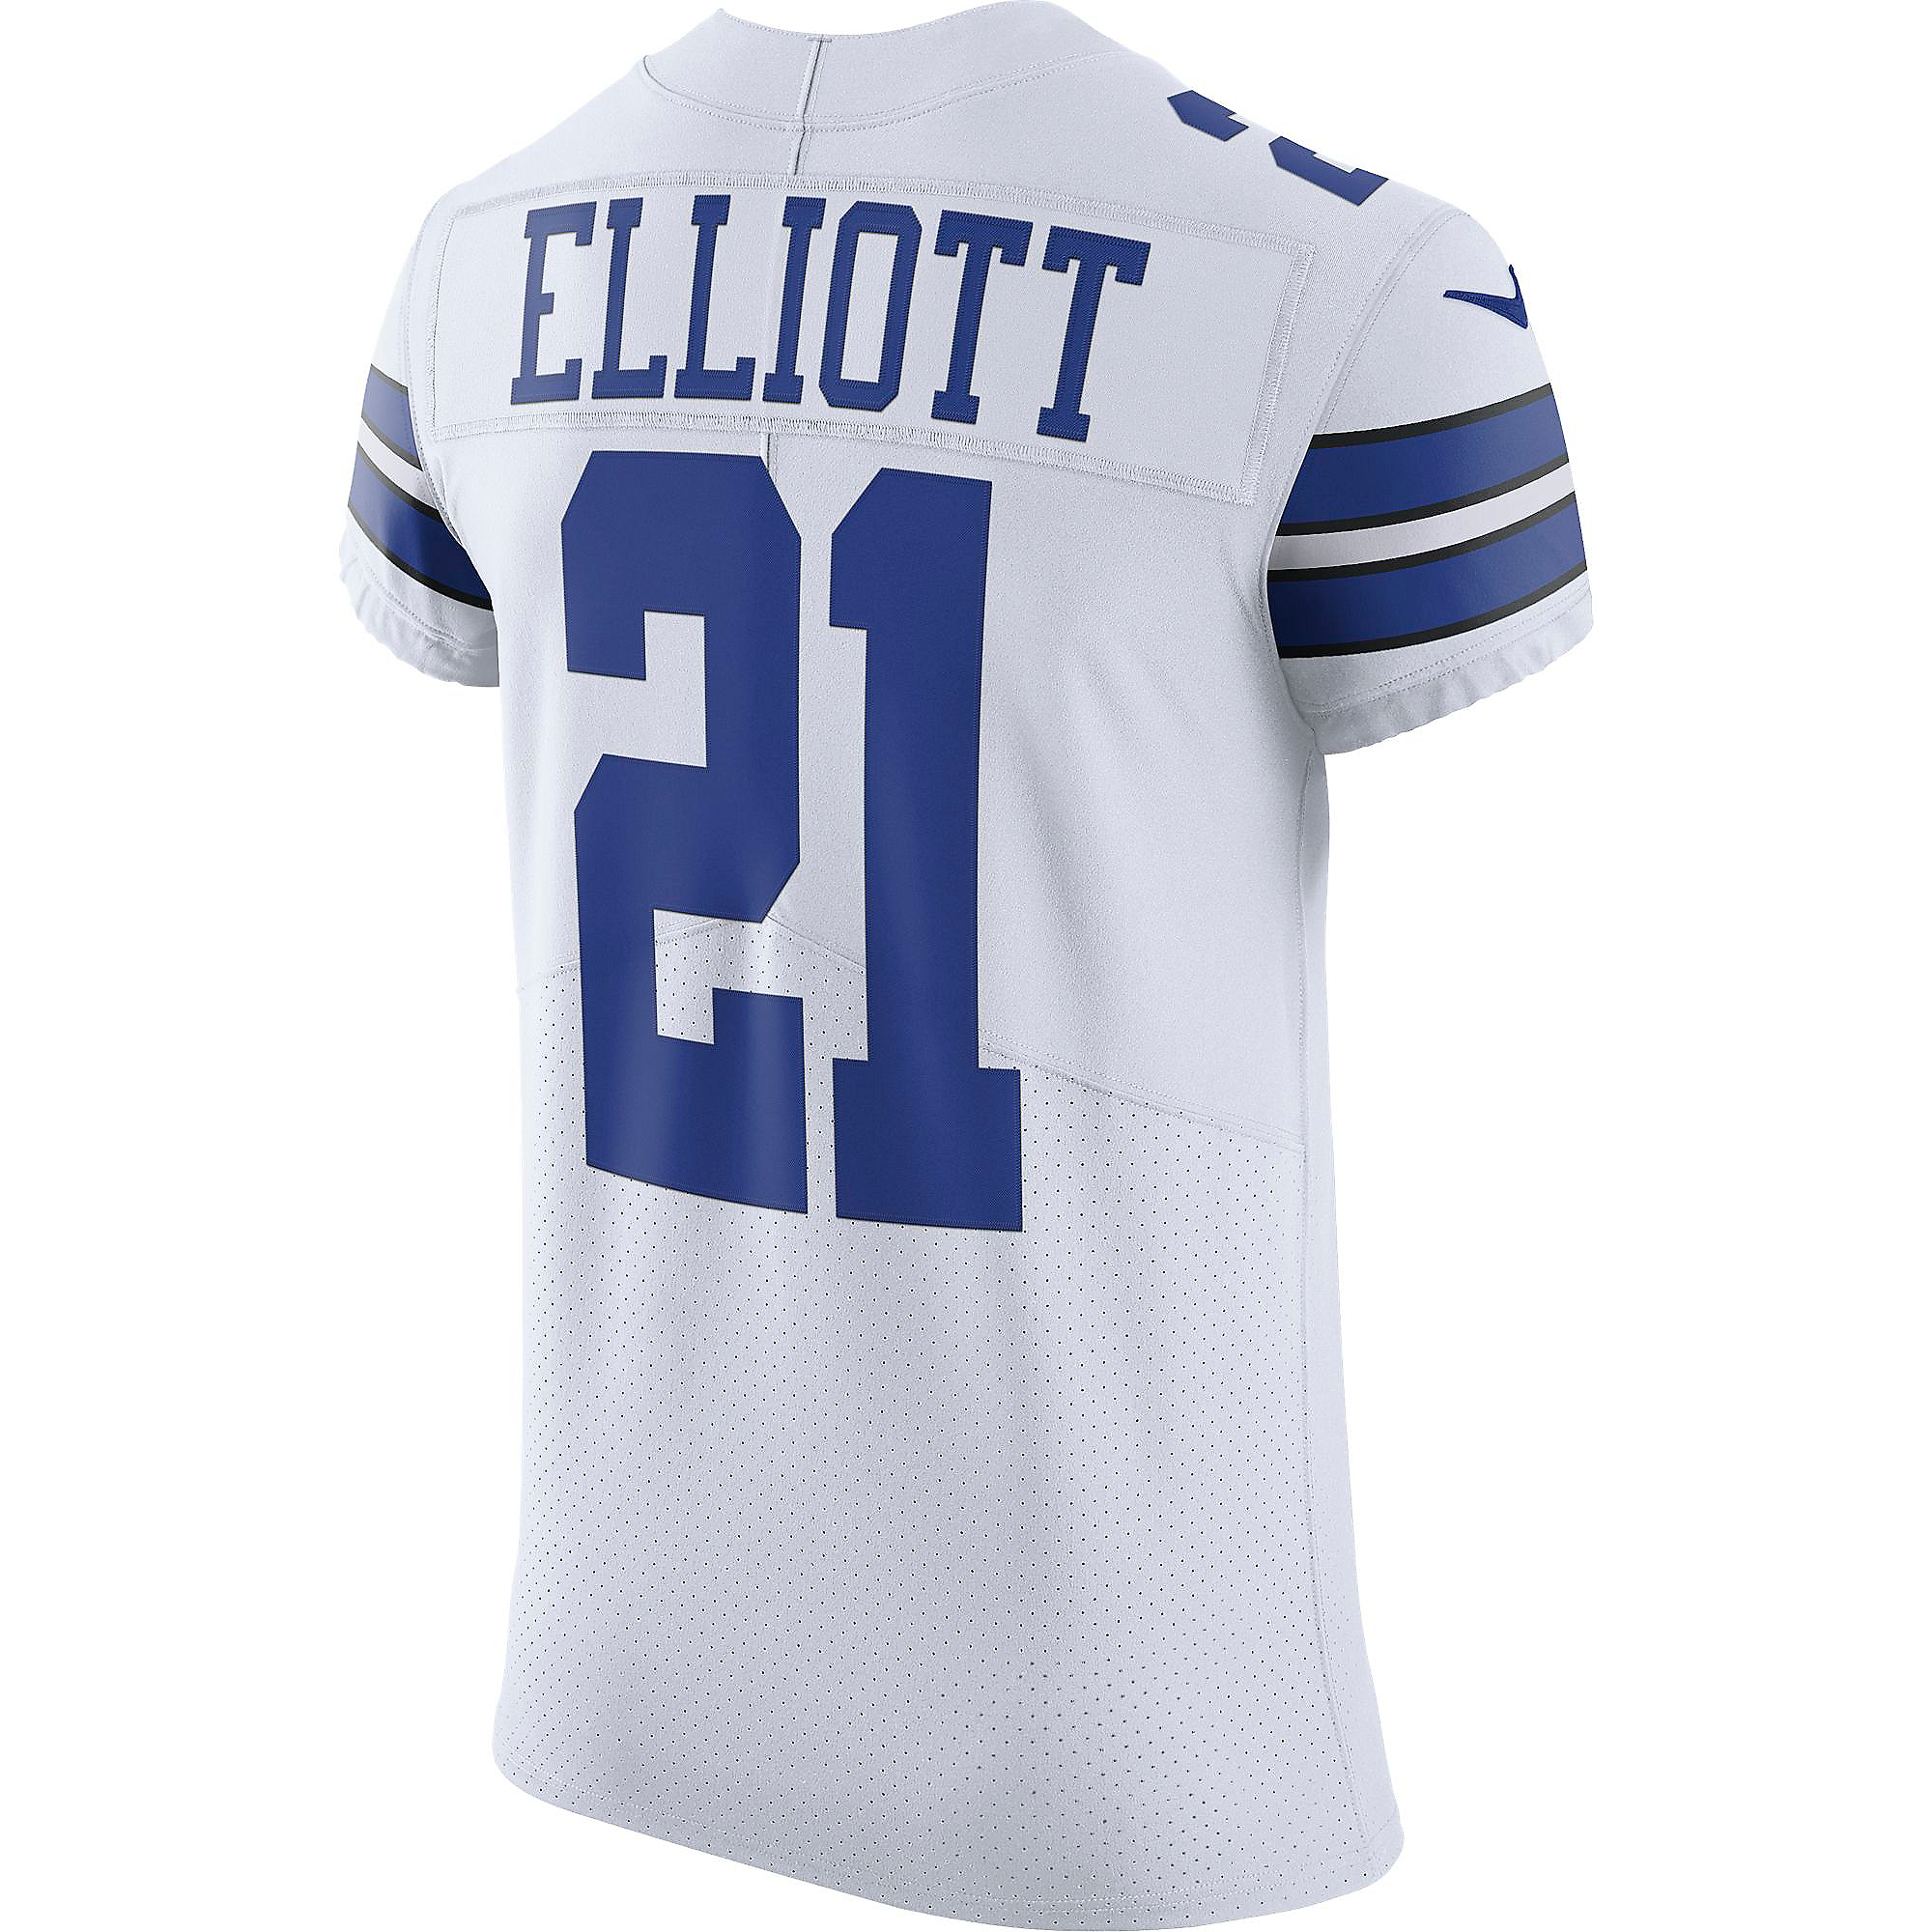 uk availability d1104 864d2 Dallas Cowboys Ezekiel Elliott #21 Nike Vapor Untouchable ...